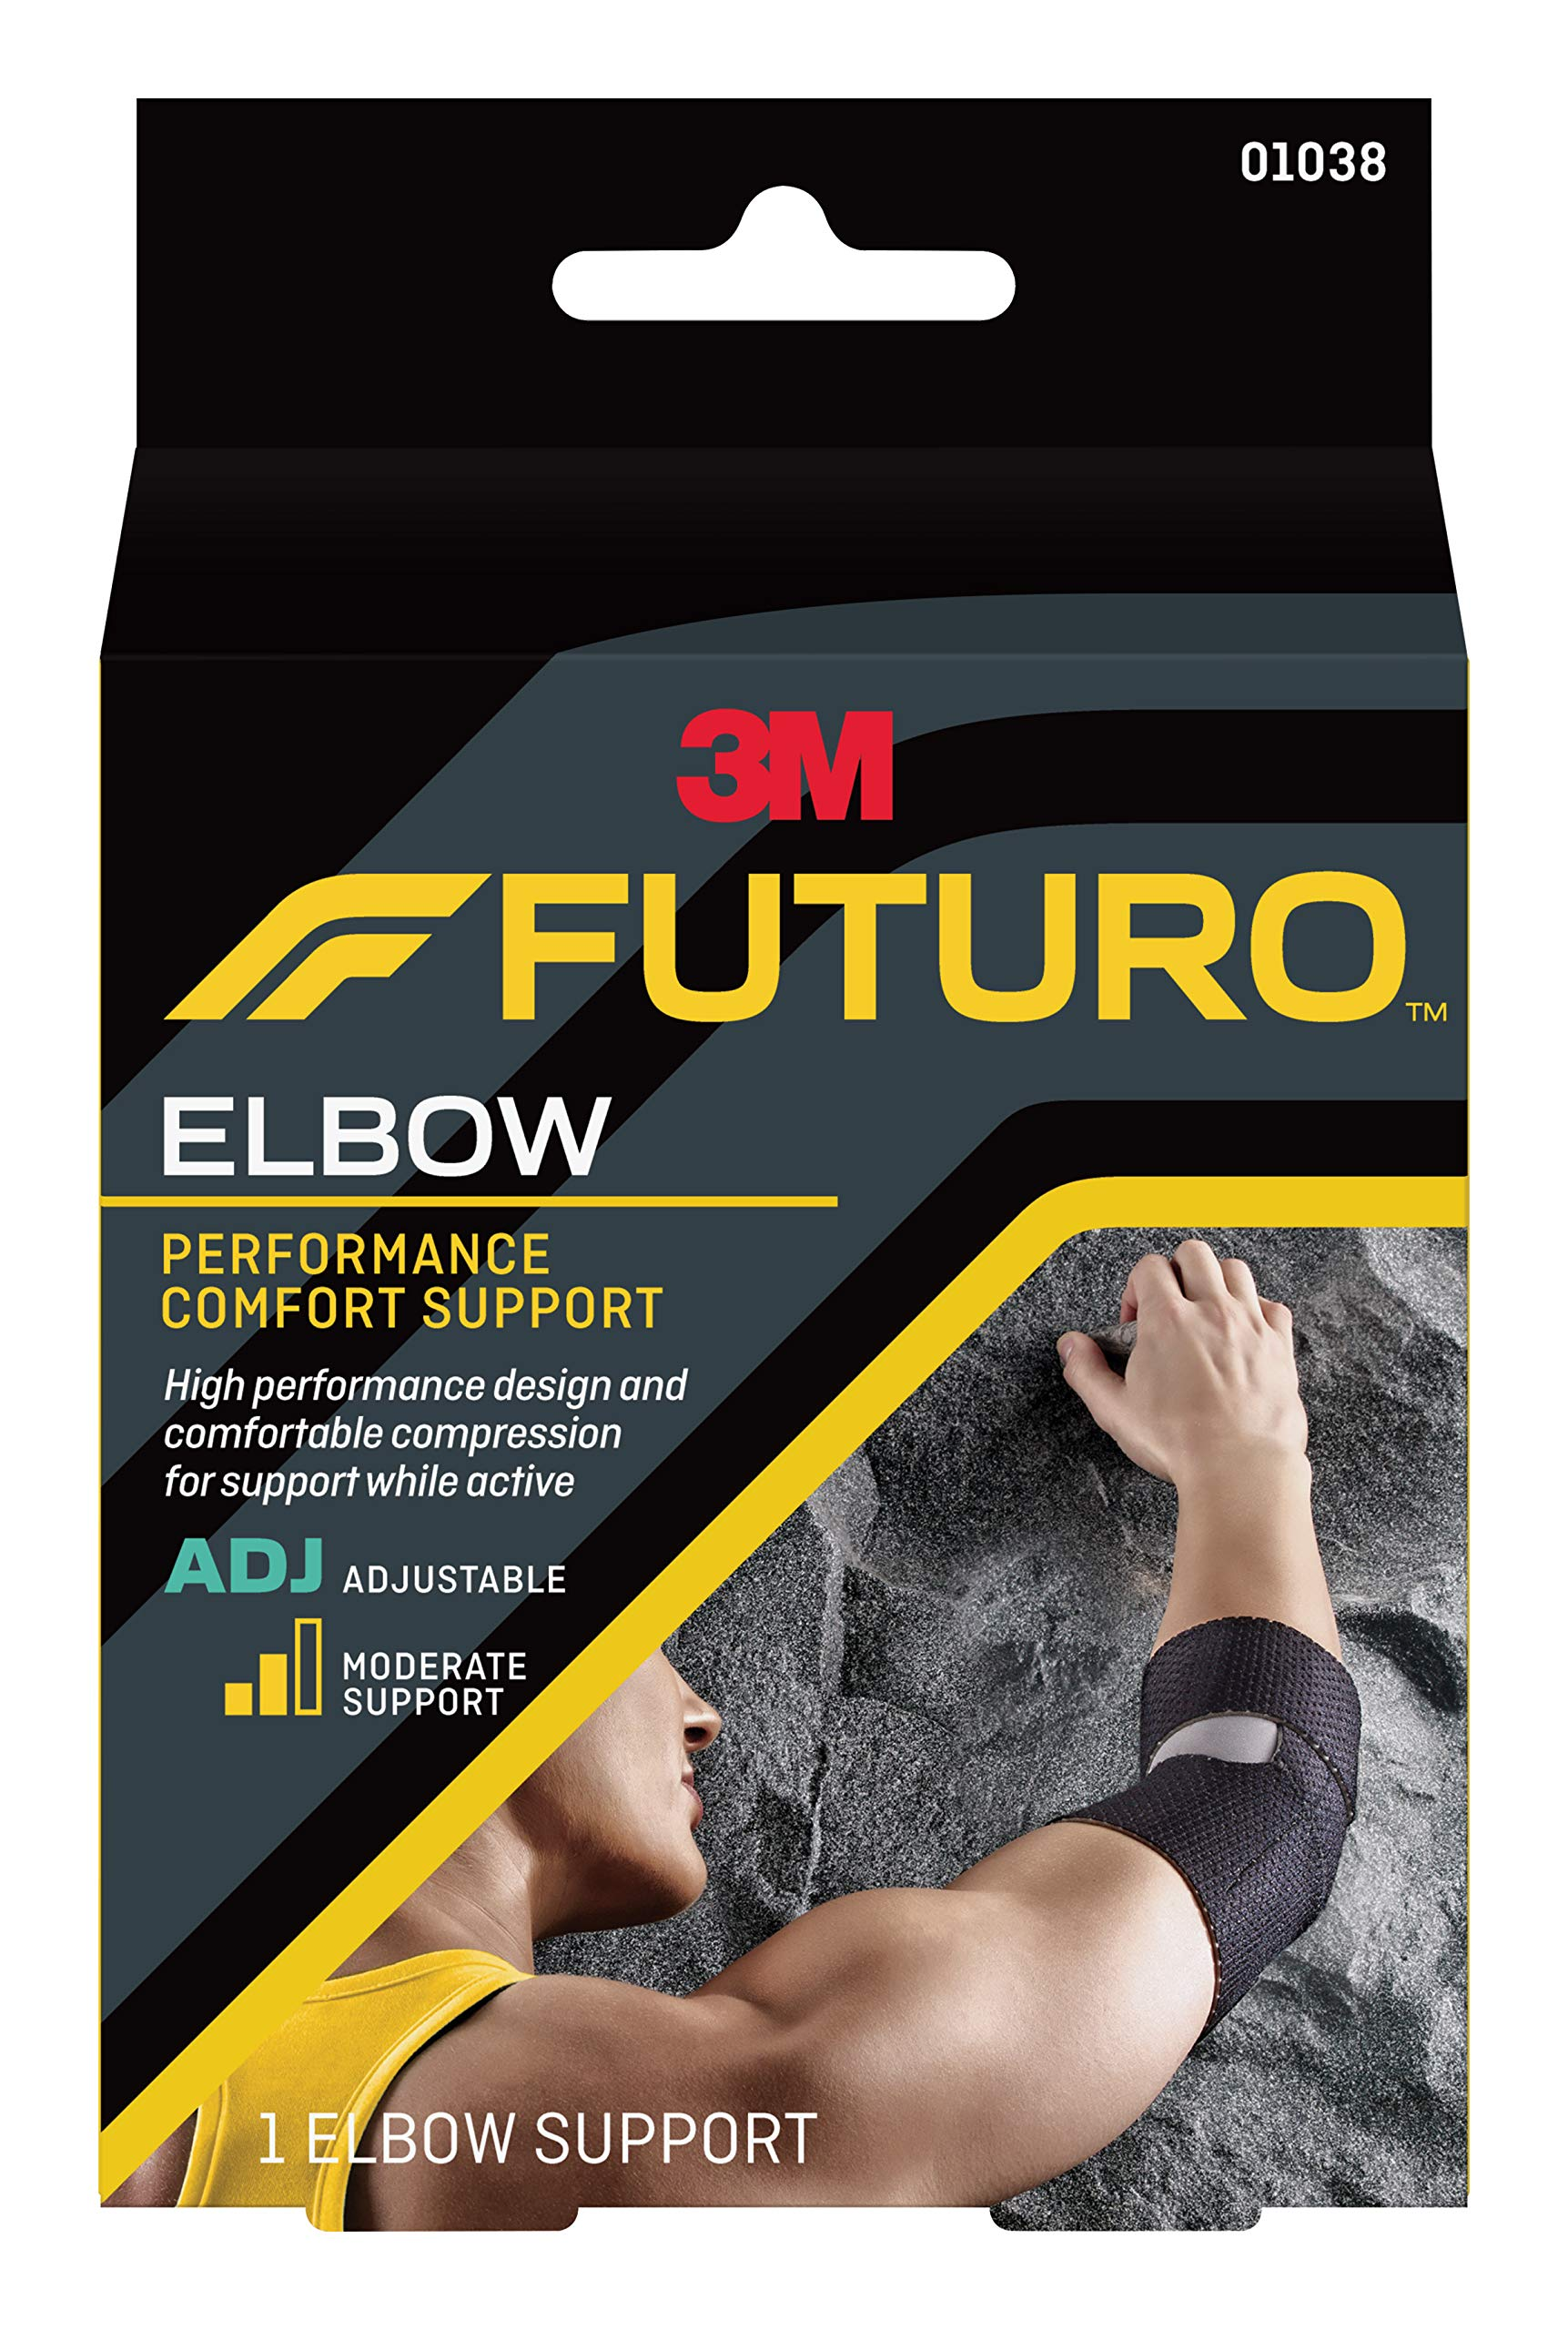 2019 year lifestyle- Elbow futuro support how to wear